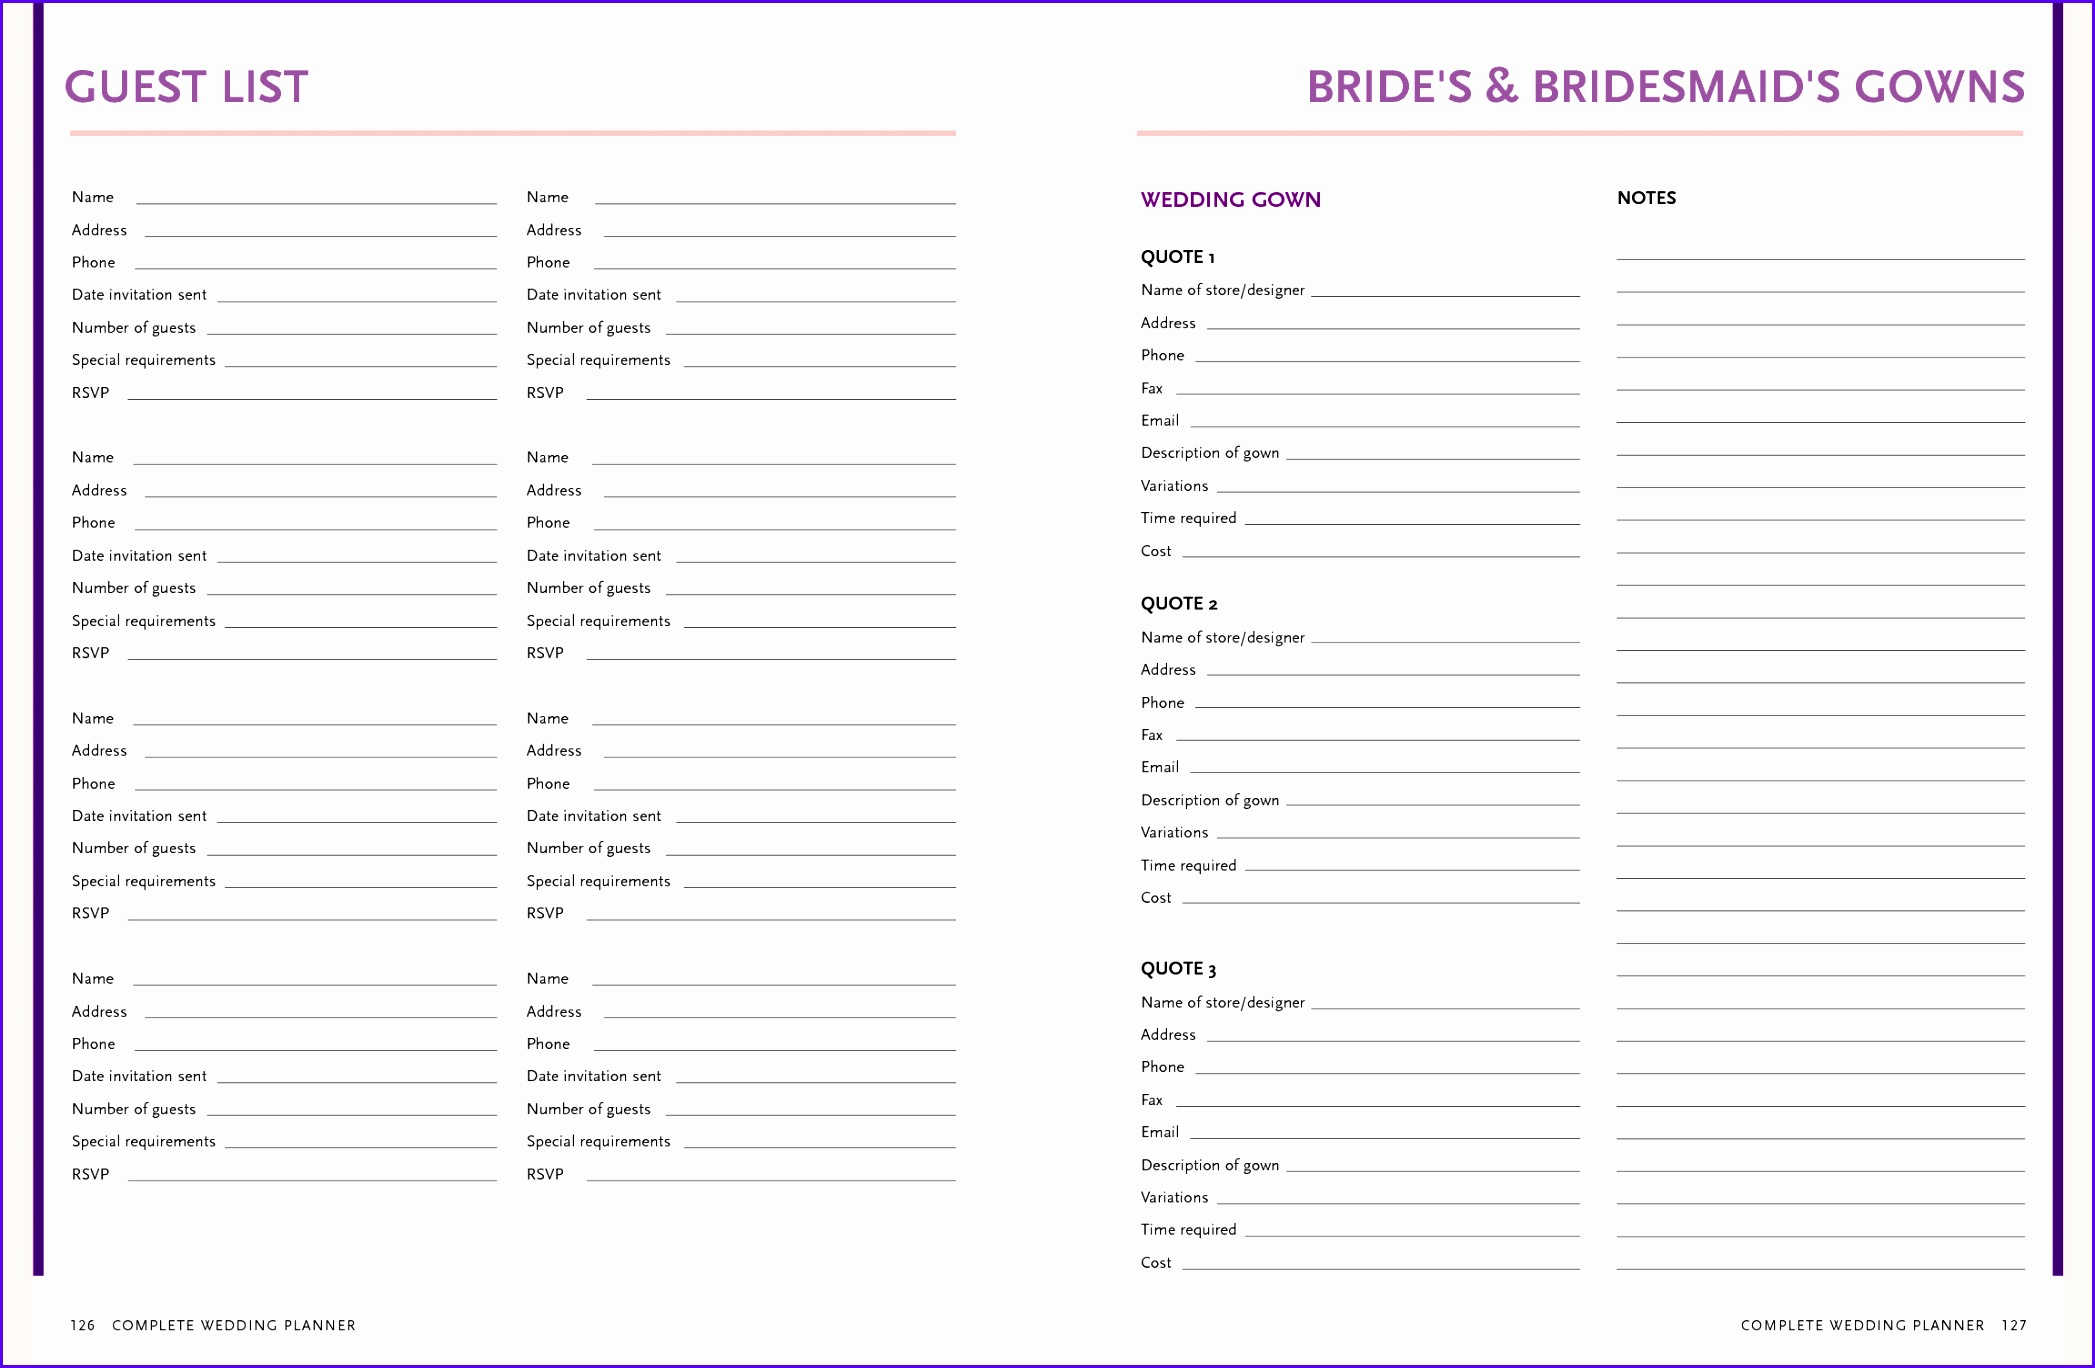 Wedding Guest List Template Excel Image Collections 5 Things Your Boss  Needs To Know About 20951368  Guest List Template